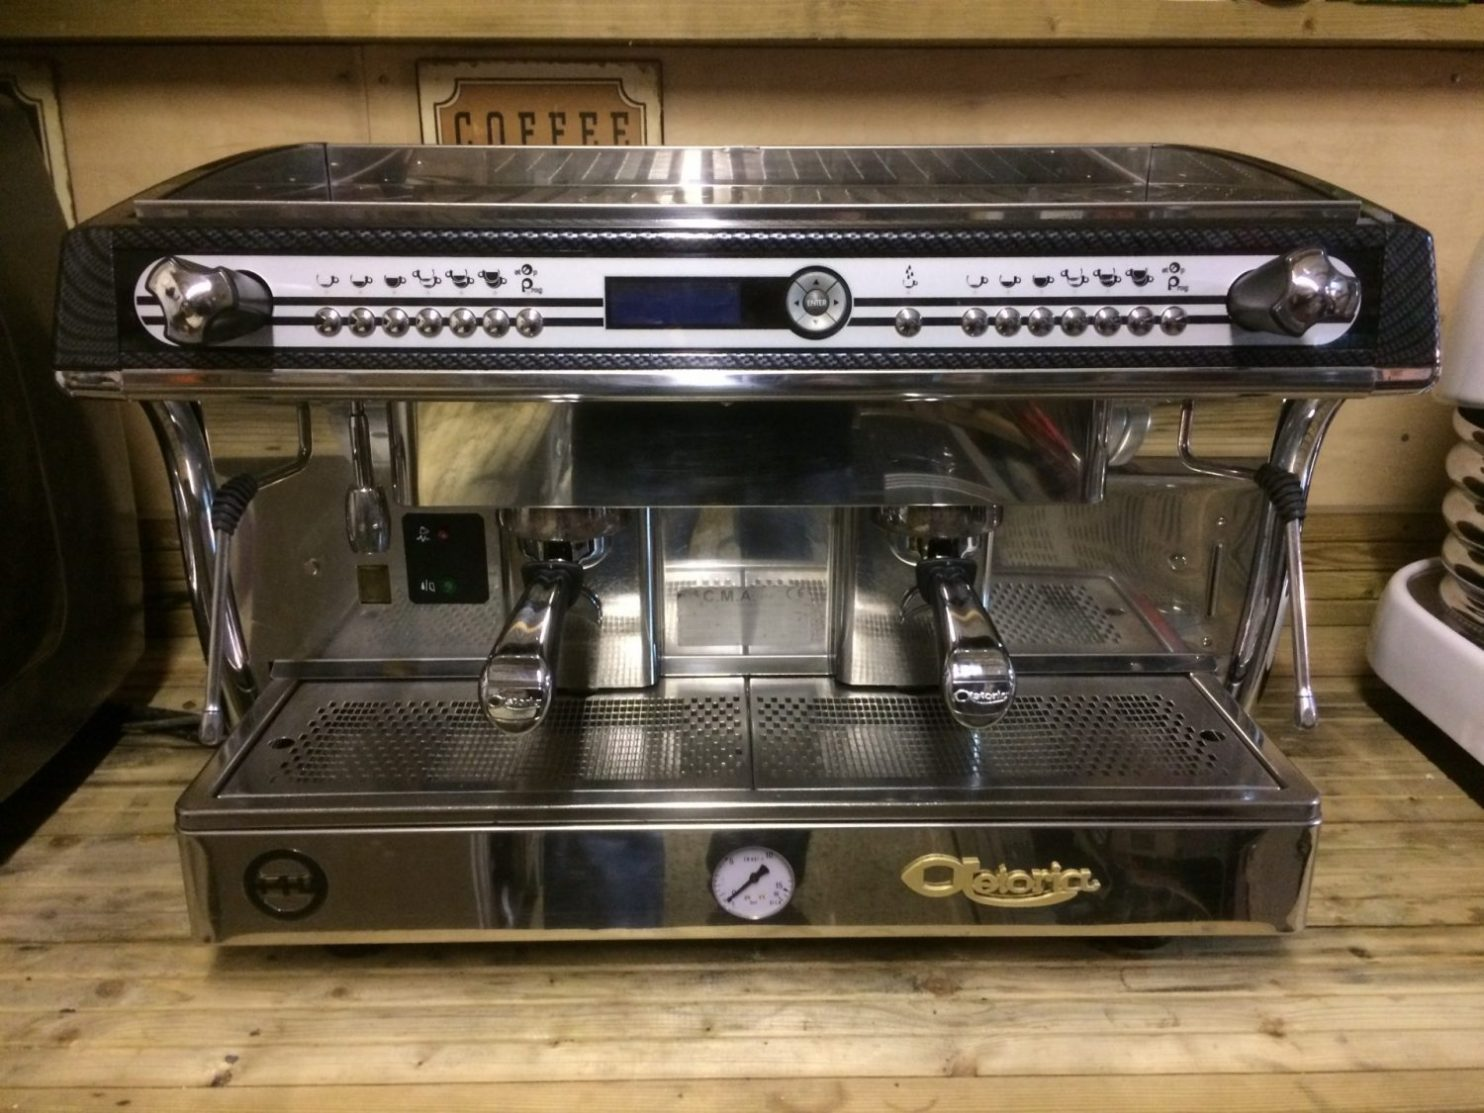 Astoria Plus4you 2 Group Machine 1495 Jimmys Espresso